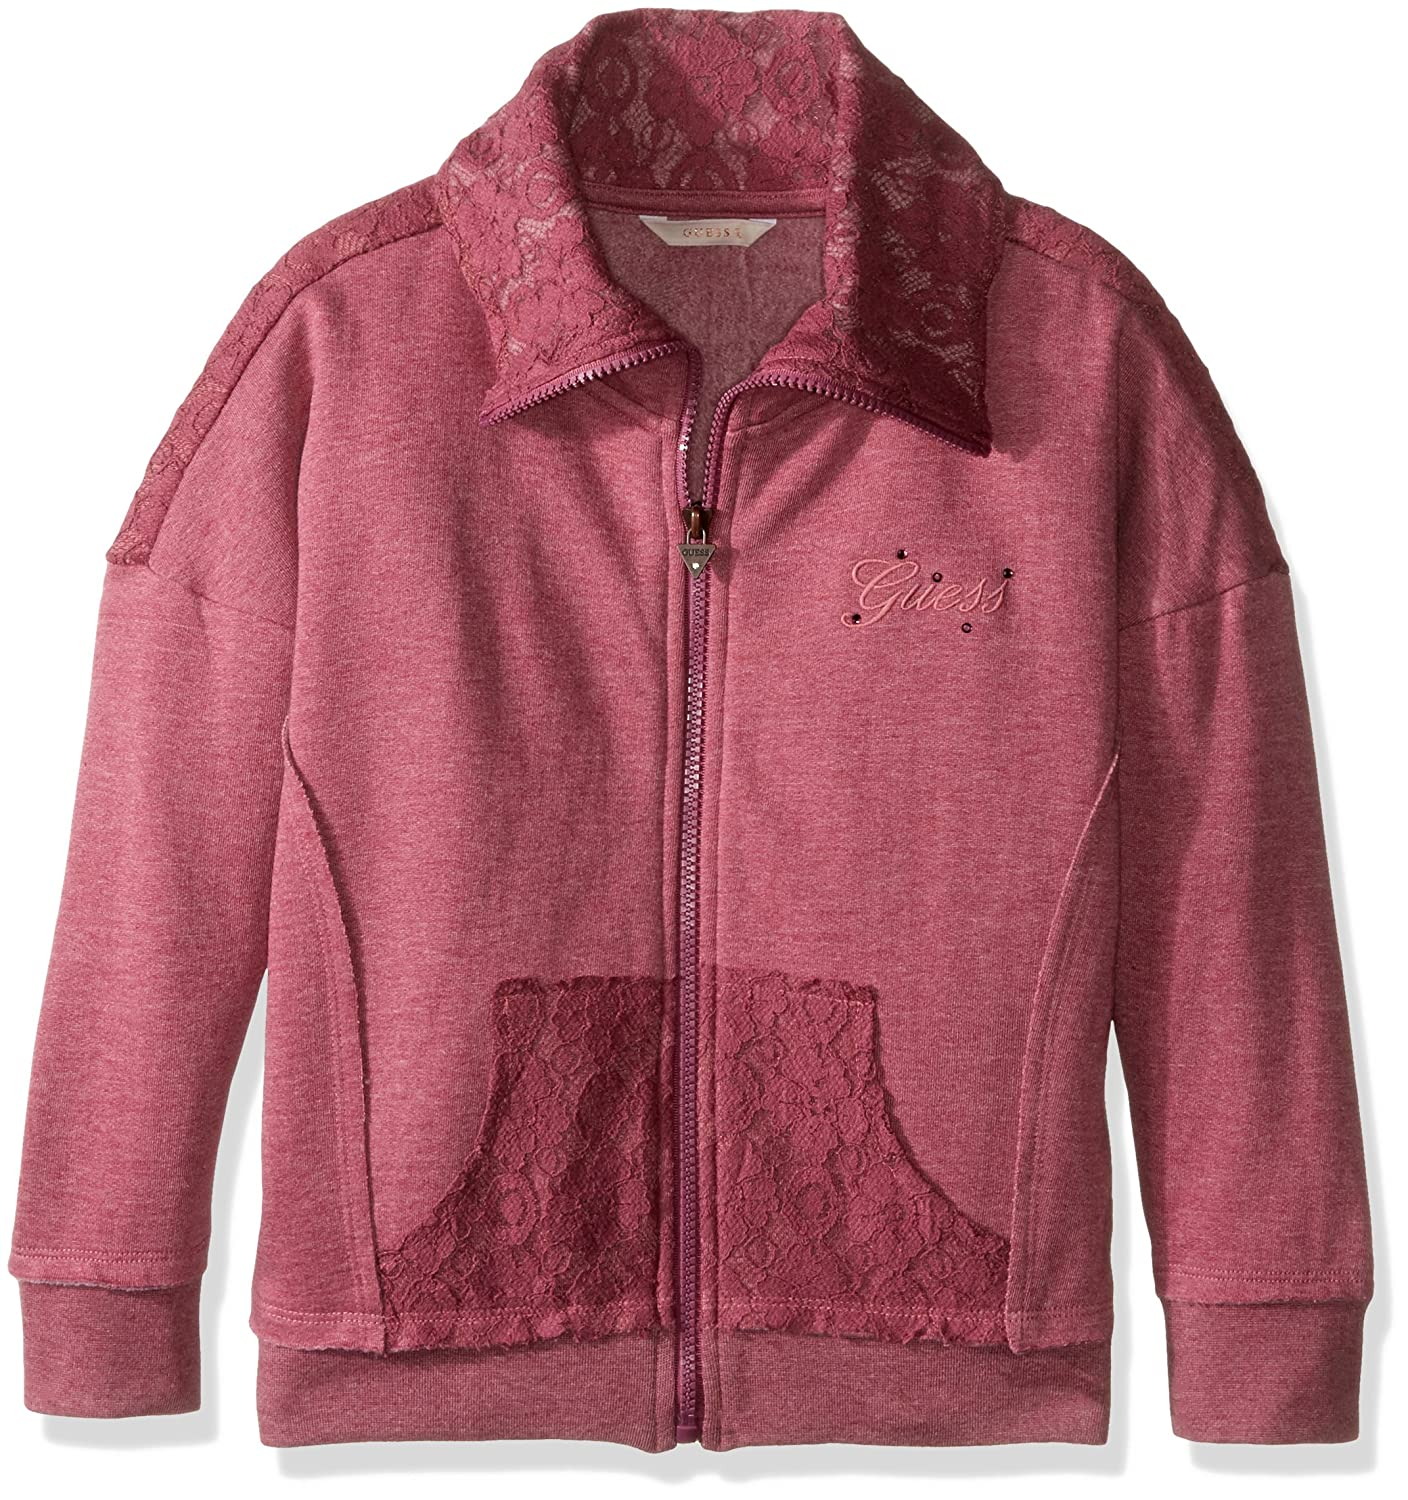 GUESS Girls' Big Zip Front Fleece Jacket with Lace Overlay J64Q7000JAA